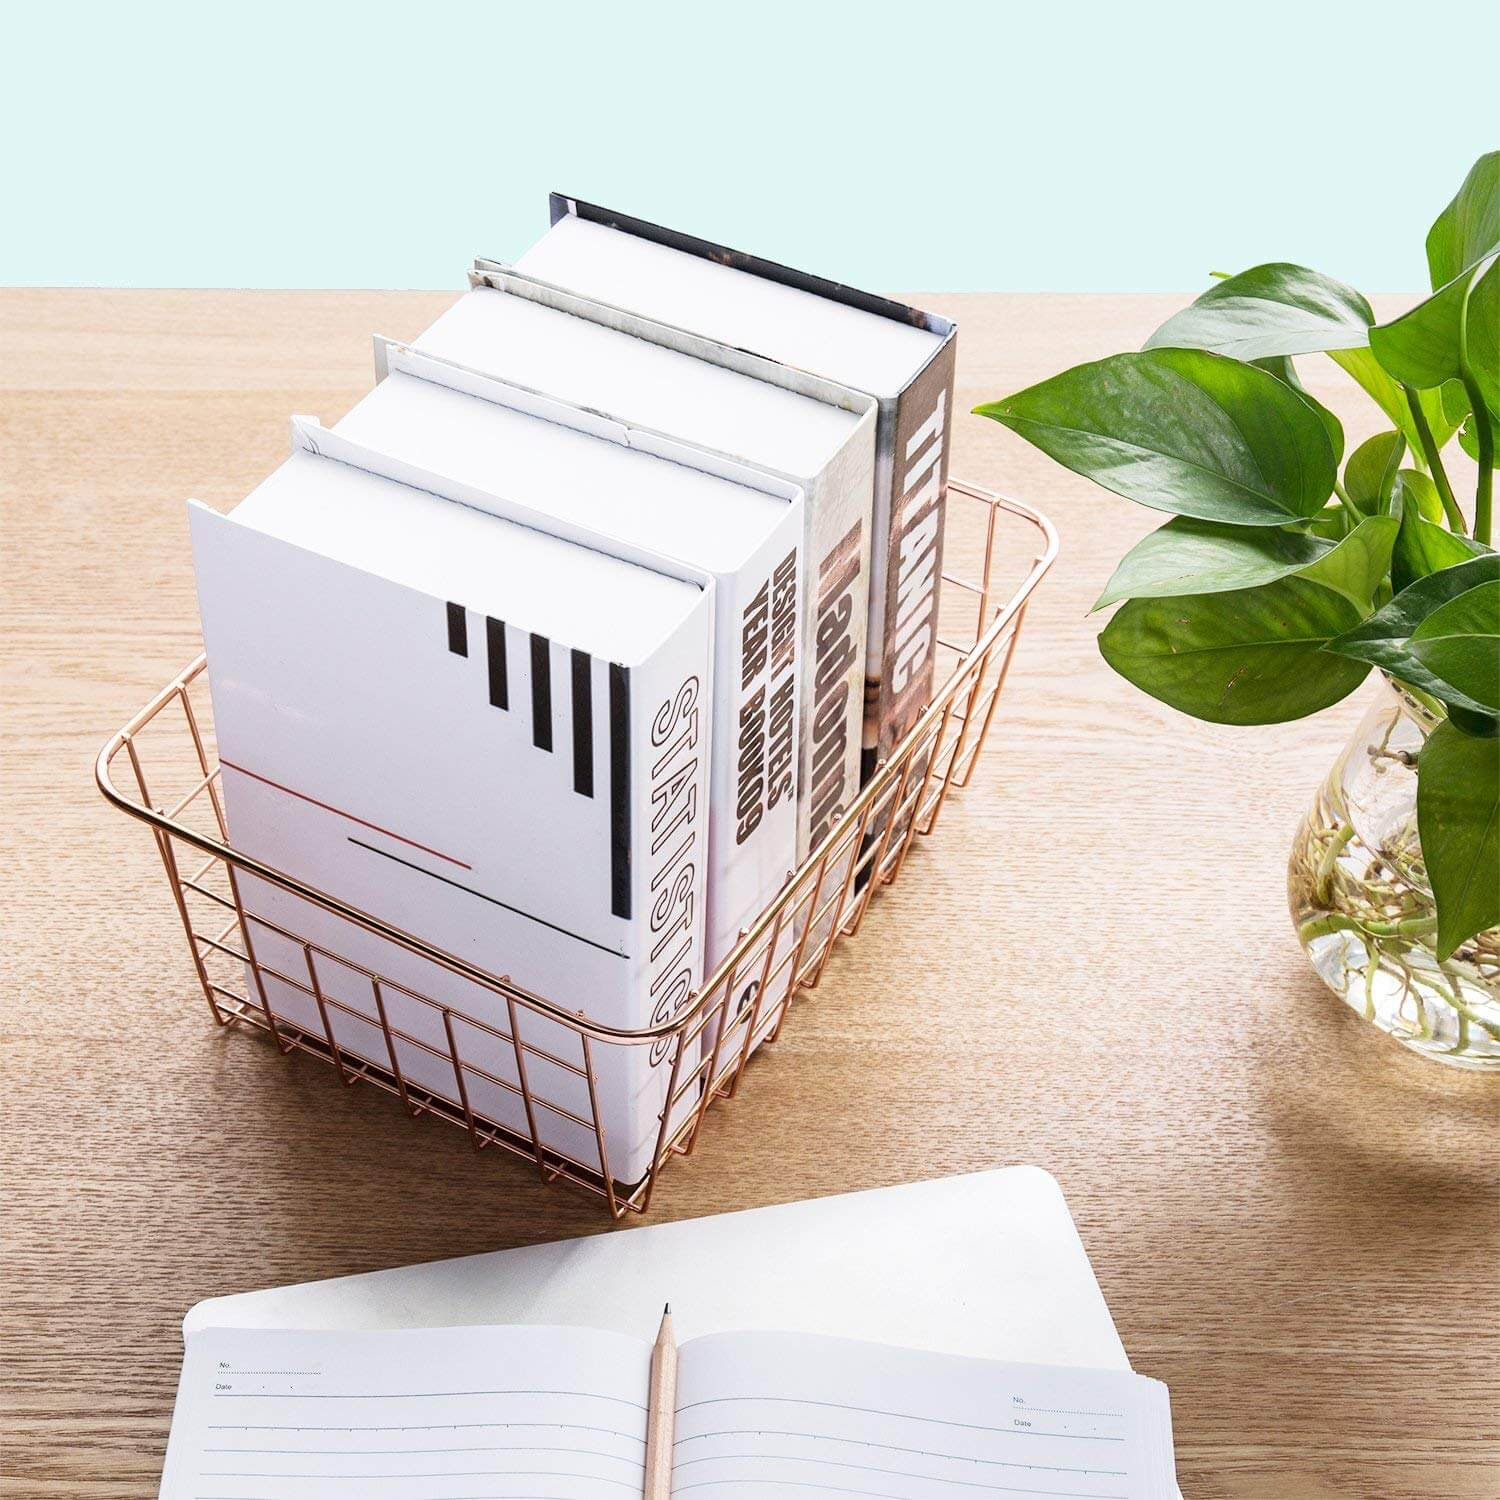 metal wire organizers as a product suggestion on how to keep your house clean